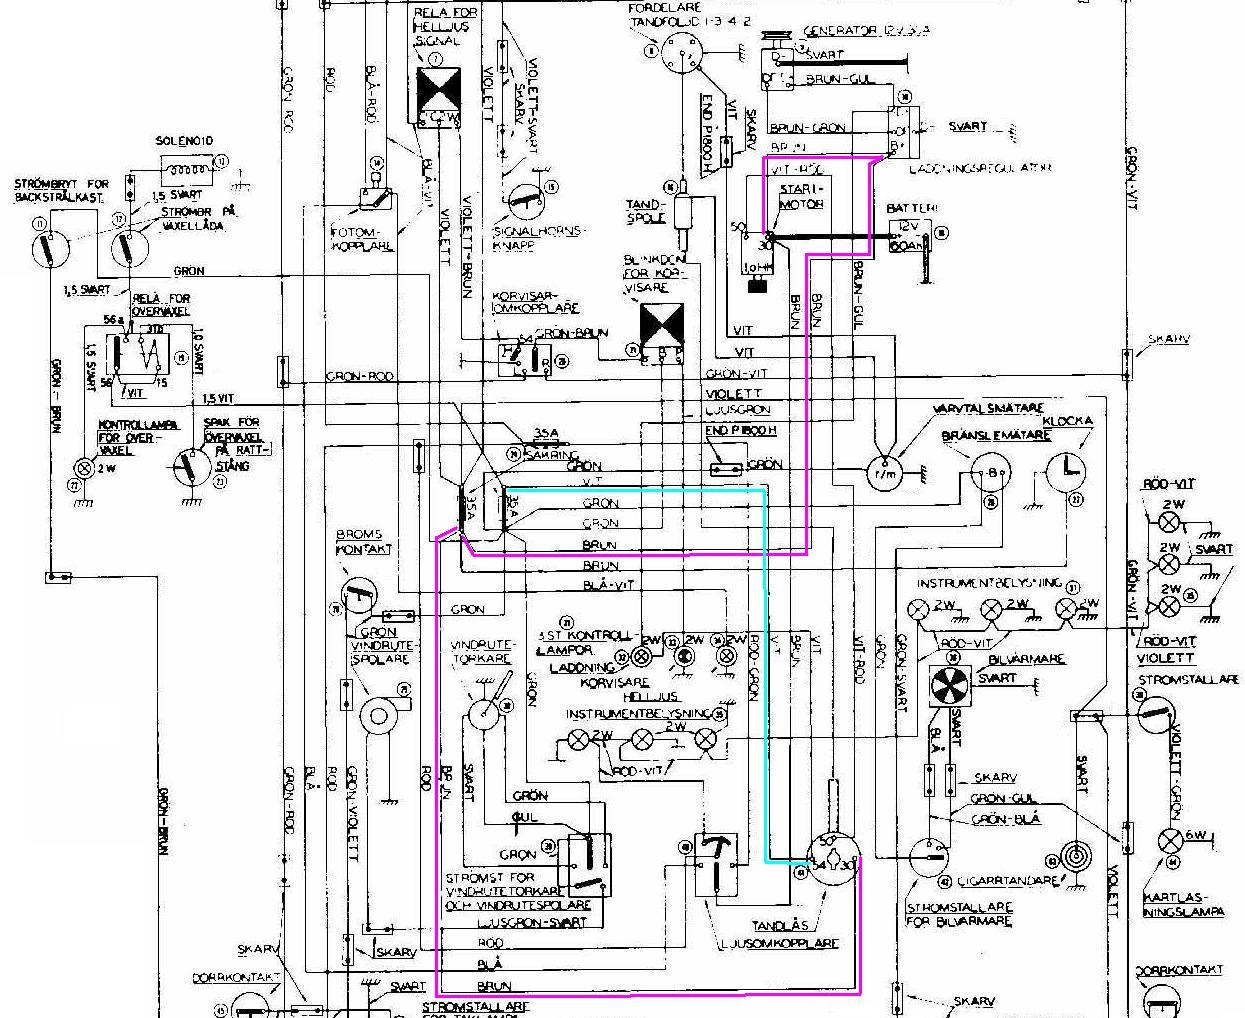 1800 Wiring Diagram marked up 1800 ignition wiring swedish vs british design Auto Wiring Diagram Library at bakdesigns.co